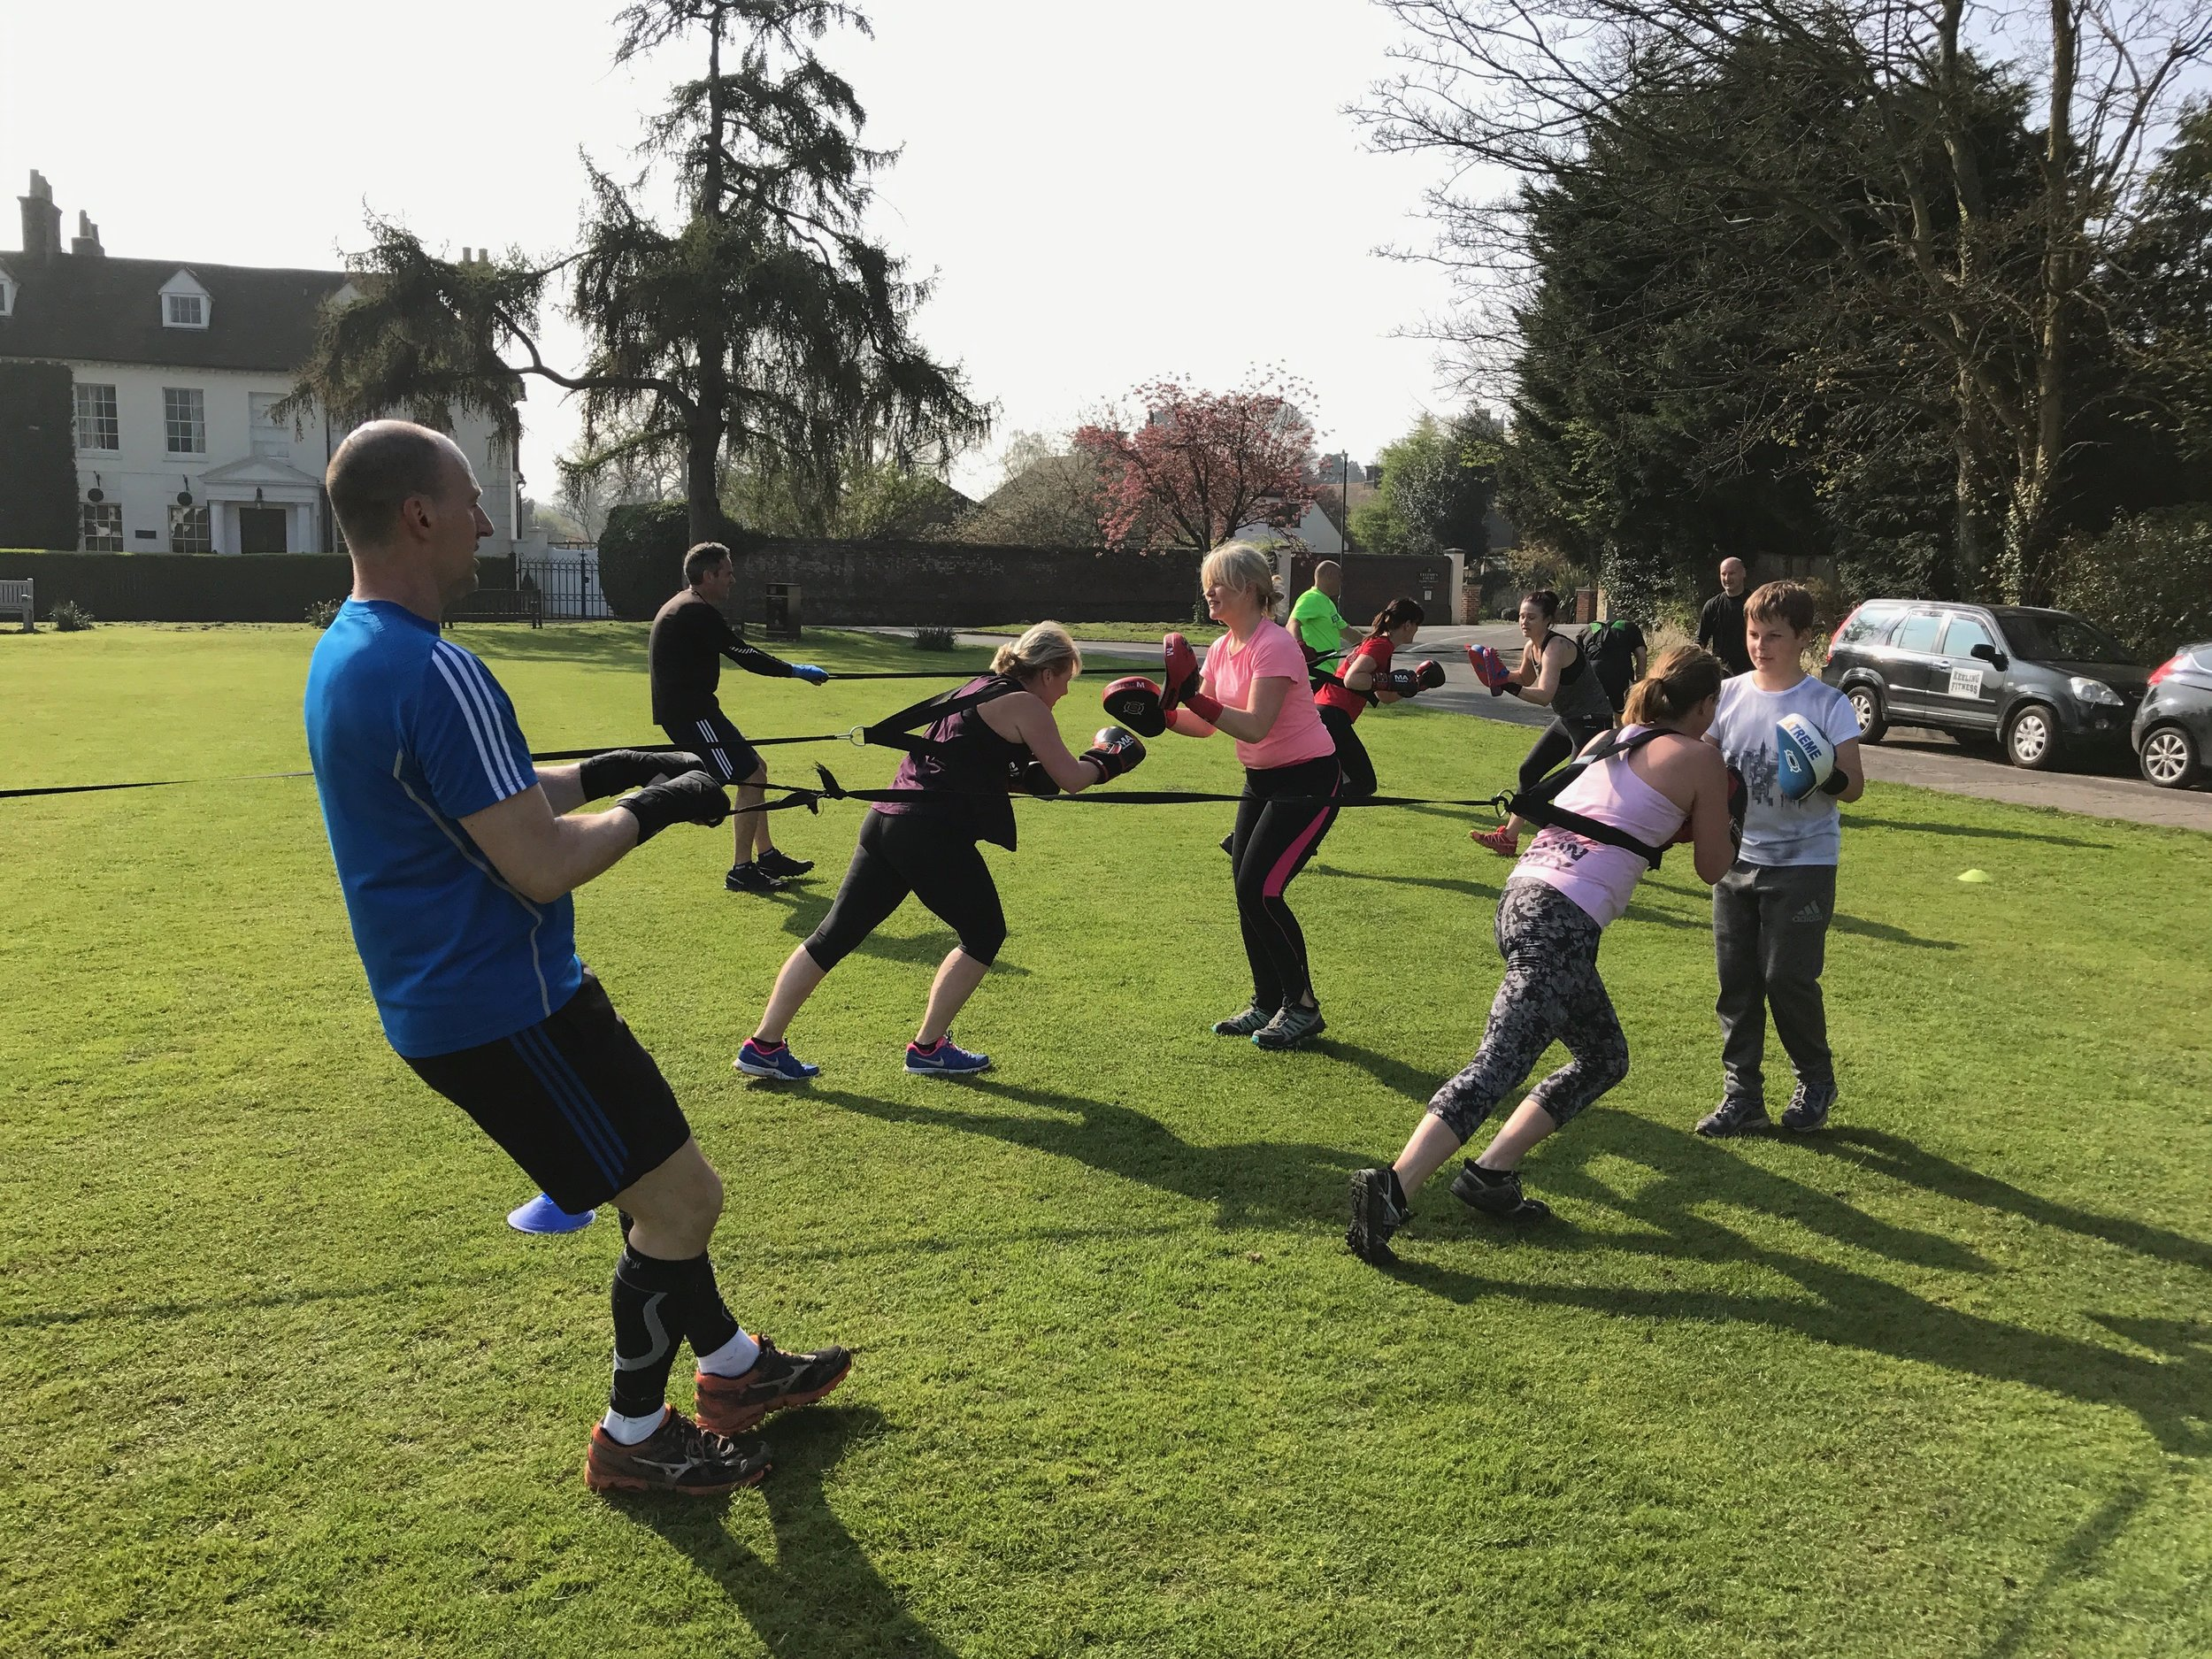 Get fit, have fun - With Keeling Fitness you're guaranteed to work hard, whether that's as part of a group or in a 1:1 PT session with Craig.Group sessions are held on Bearsted Green (weather dependent) all year-round, and are drop in and pay-as-you go. Work hard and be motivated by others to reach your goals.If you're looking for a more tailored workout, 1:1 PT sessions are held in Craig's fully-equipped custom studio (affectionately known as 'The Shed' at his home in Bearsted.